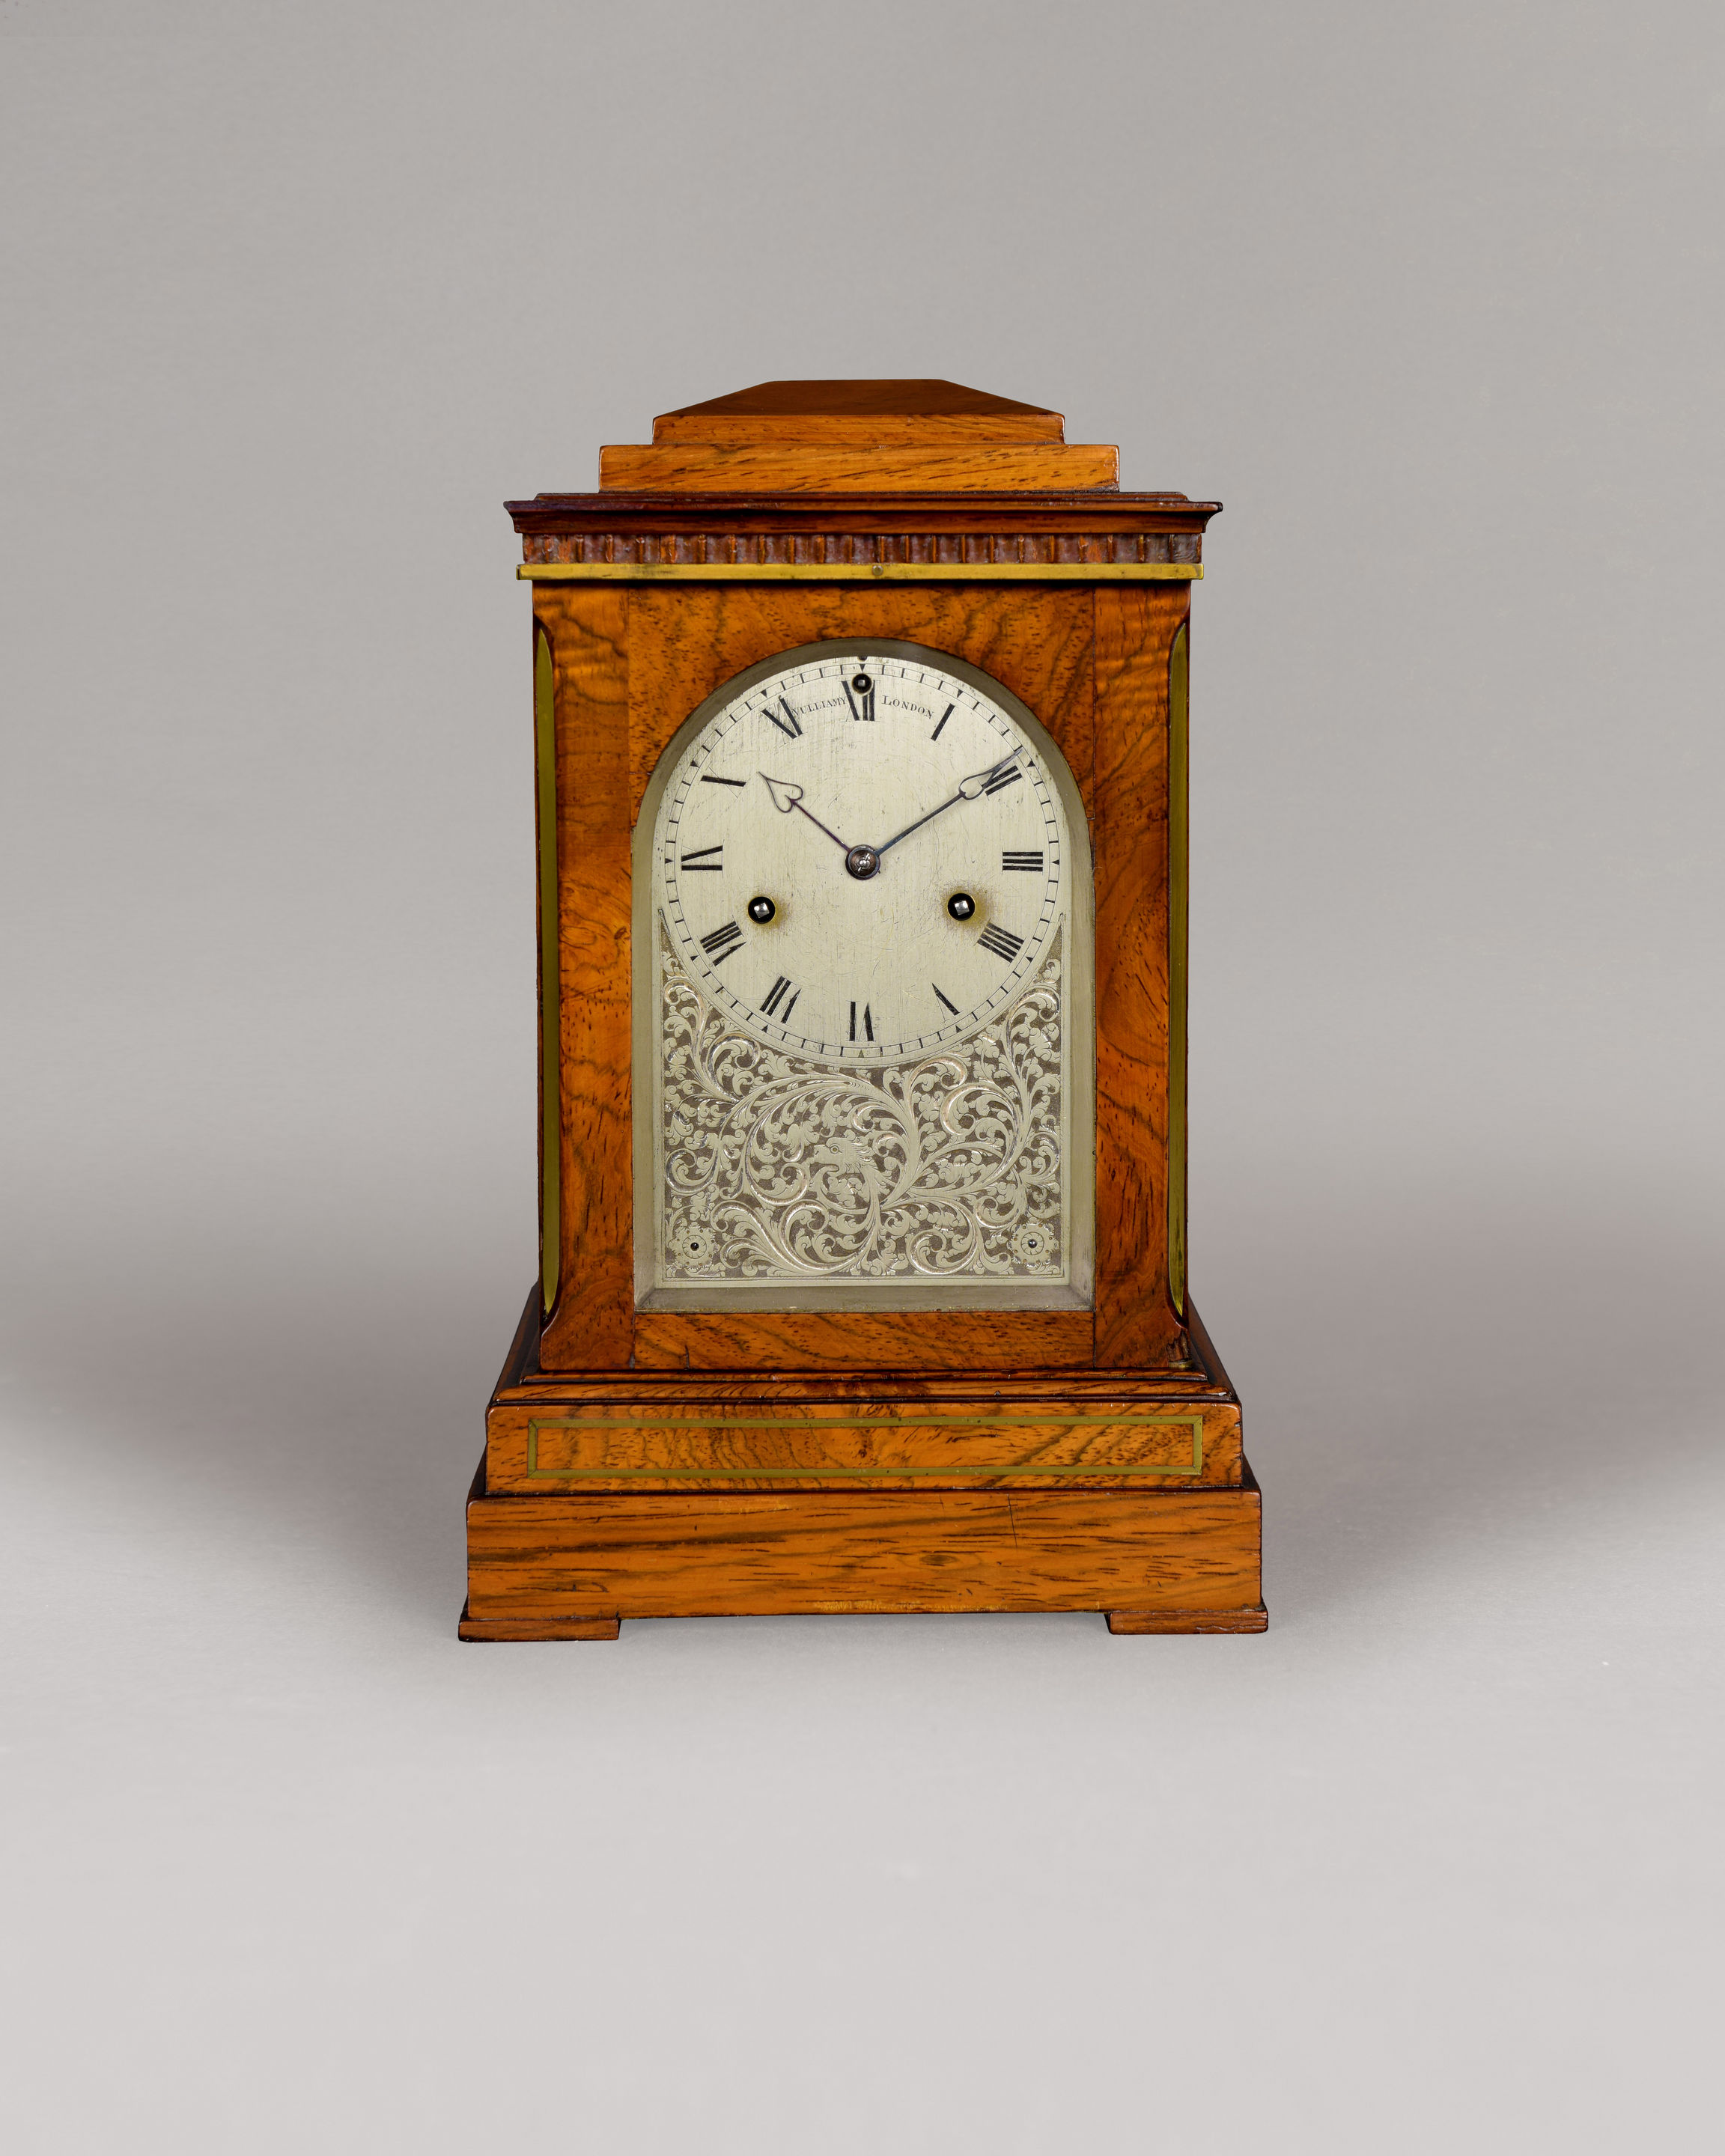 VULLIAMY N° 769. A RARE SMALL ROSEWOOD STRIKING LIBRARY CLOCK.